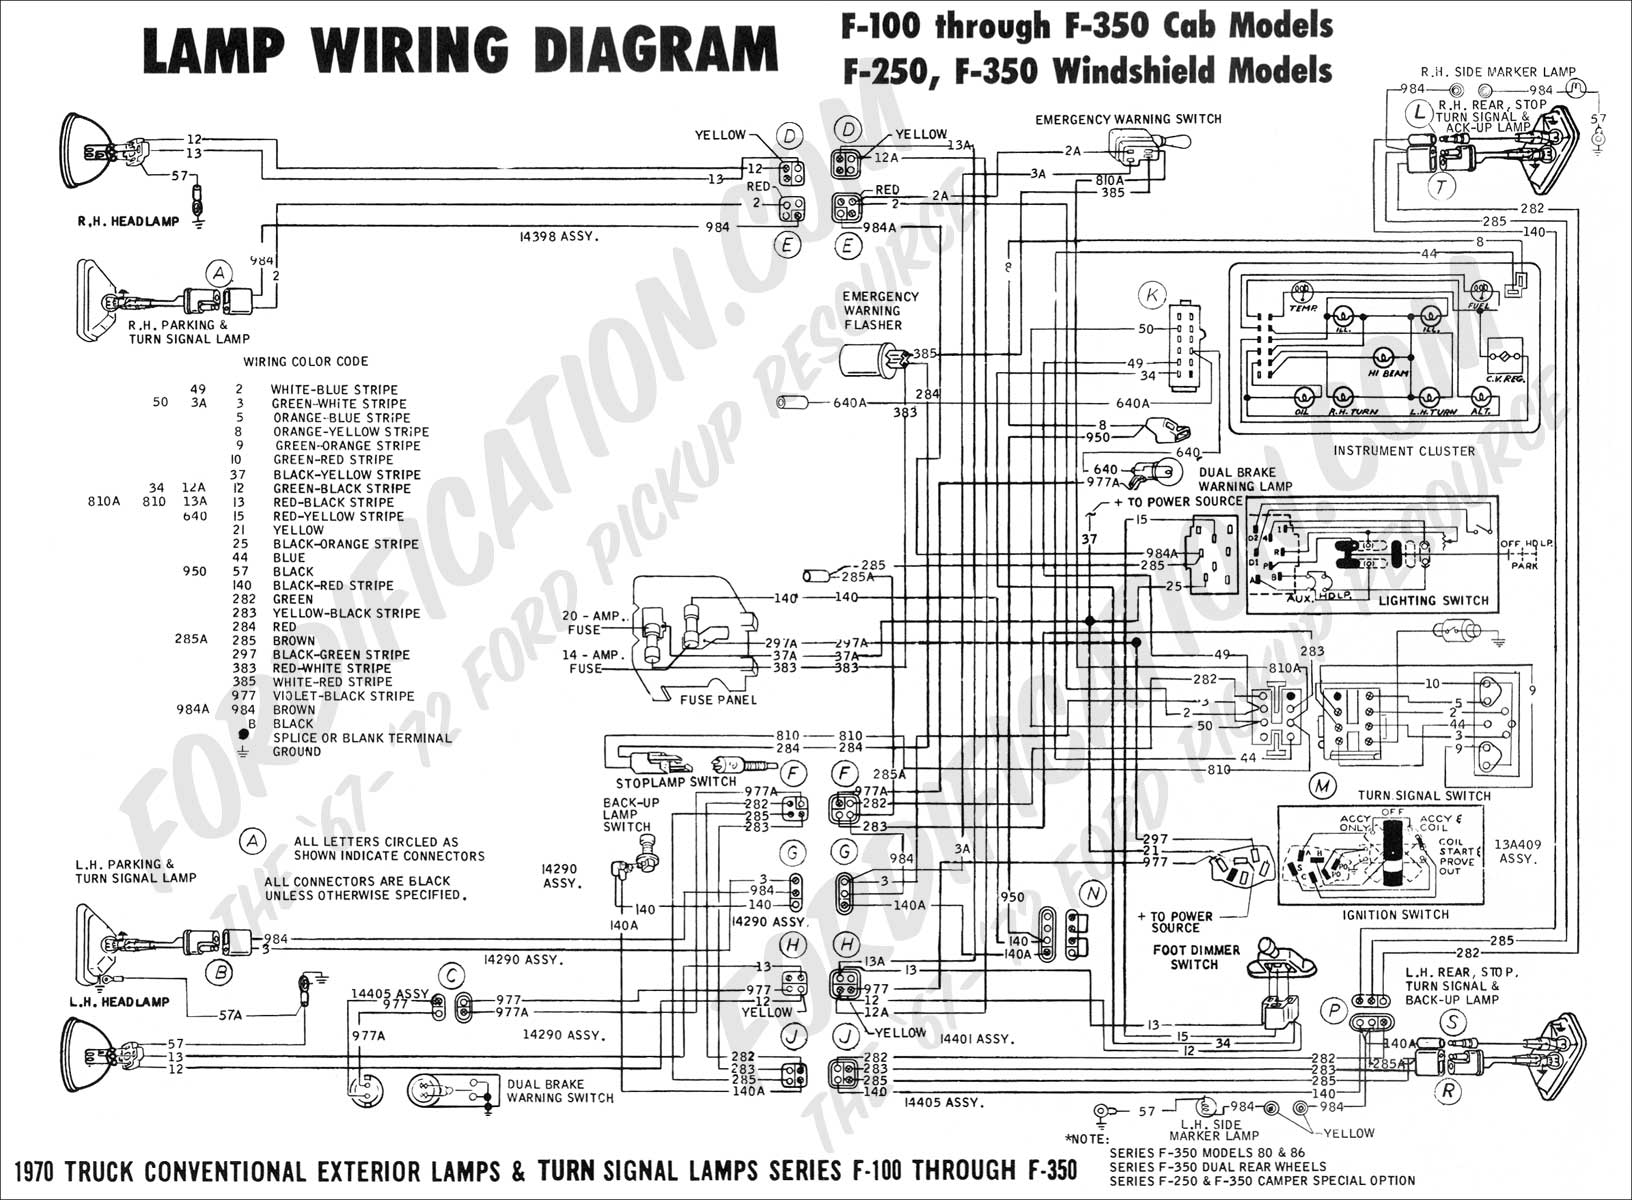 wiring diagram_70ext lights01 ford truck technical drawings and schematics section h wiring ford f250 wiring diagram at nearapp.co